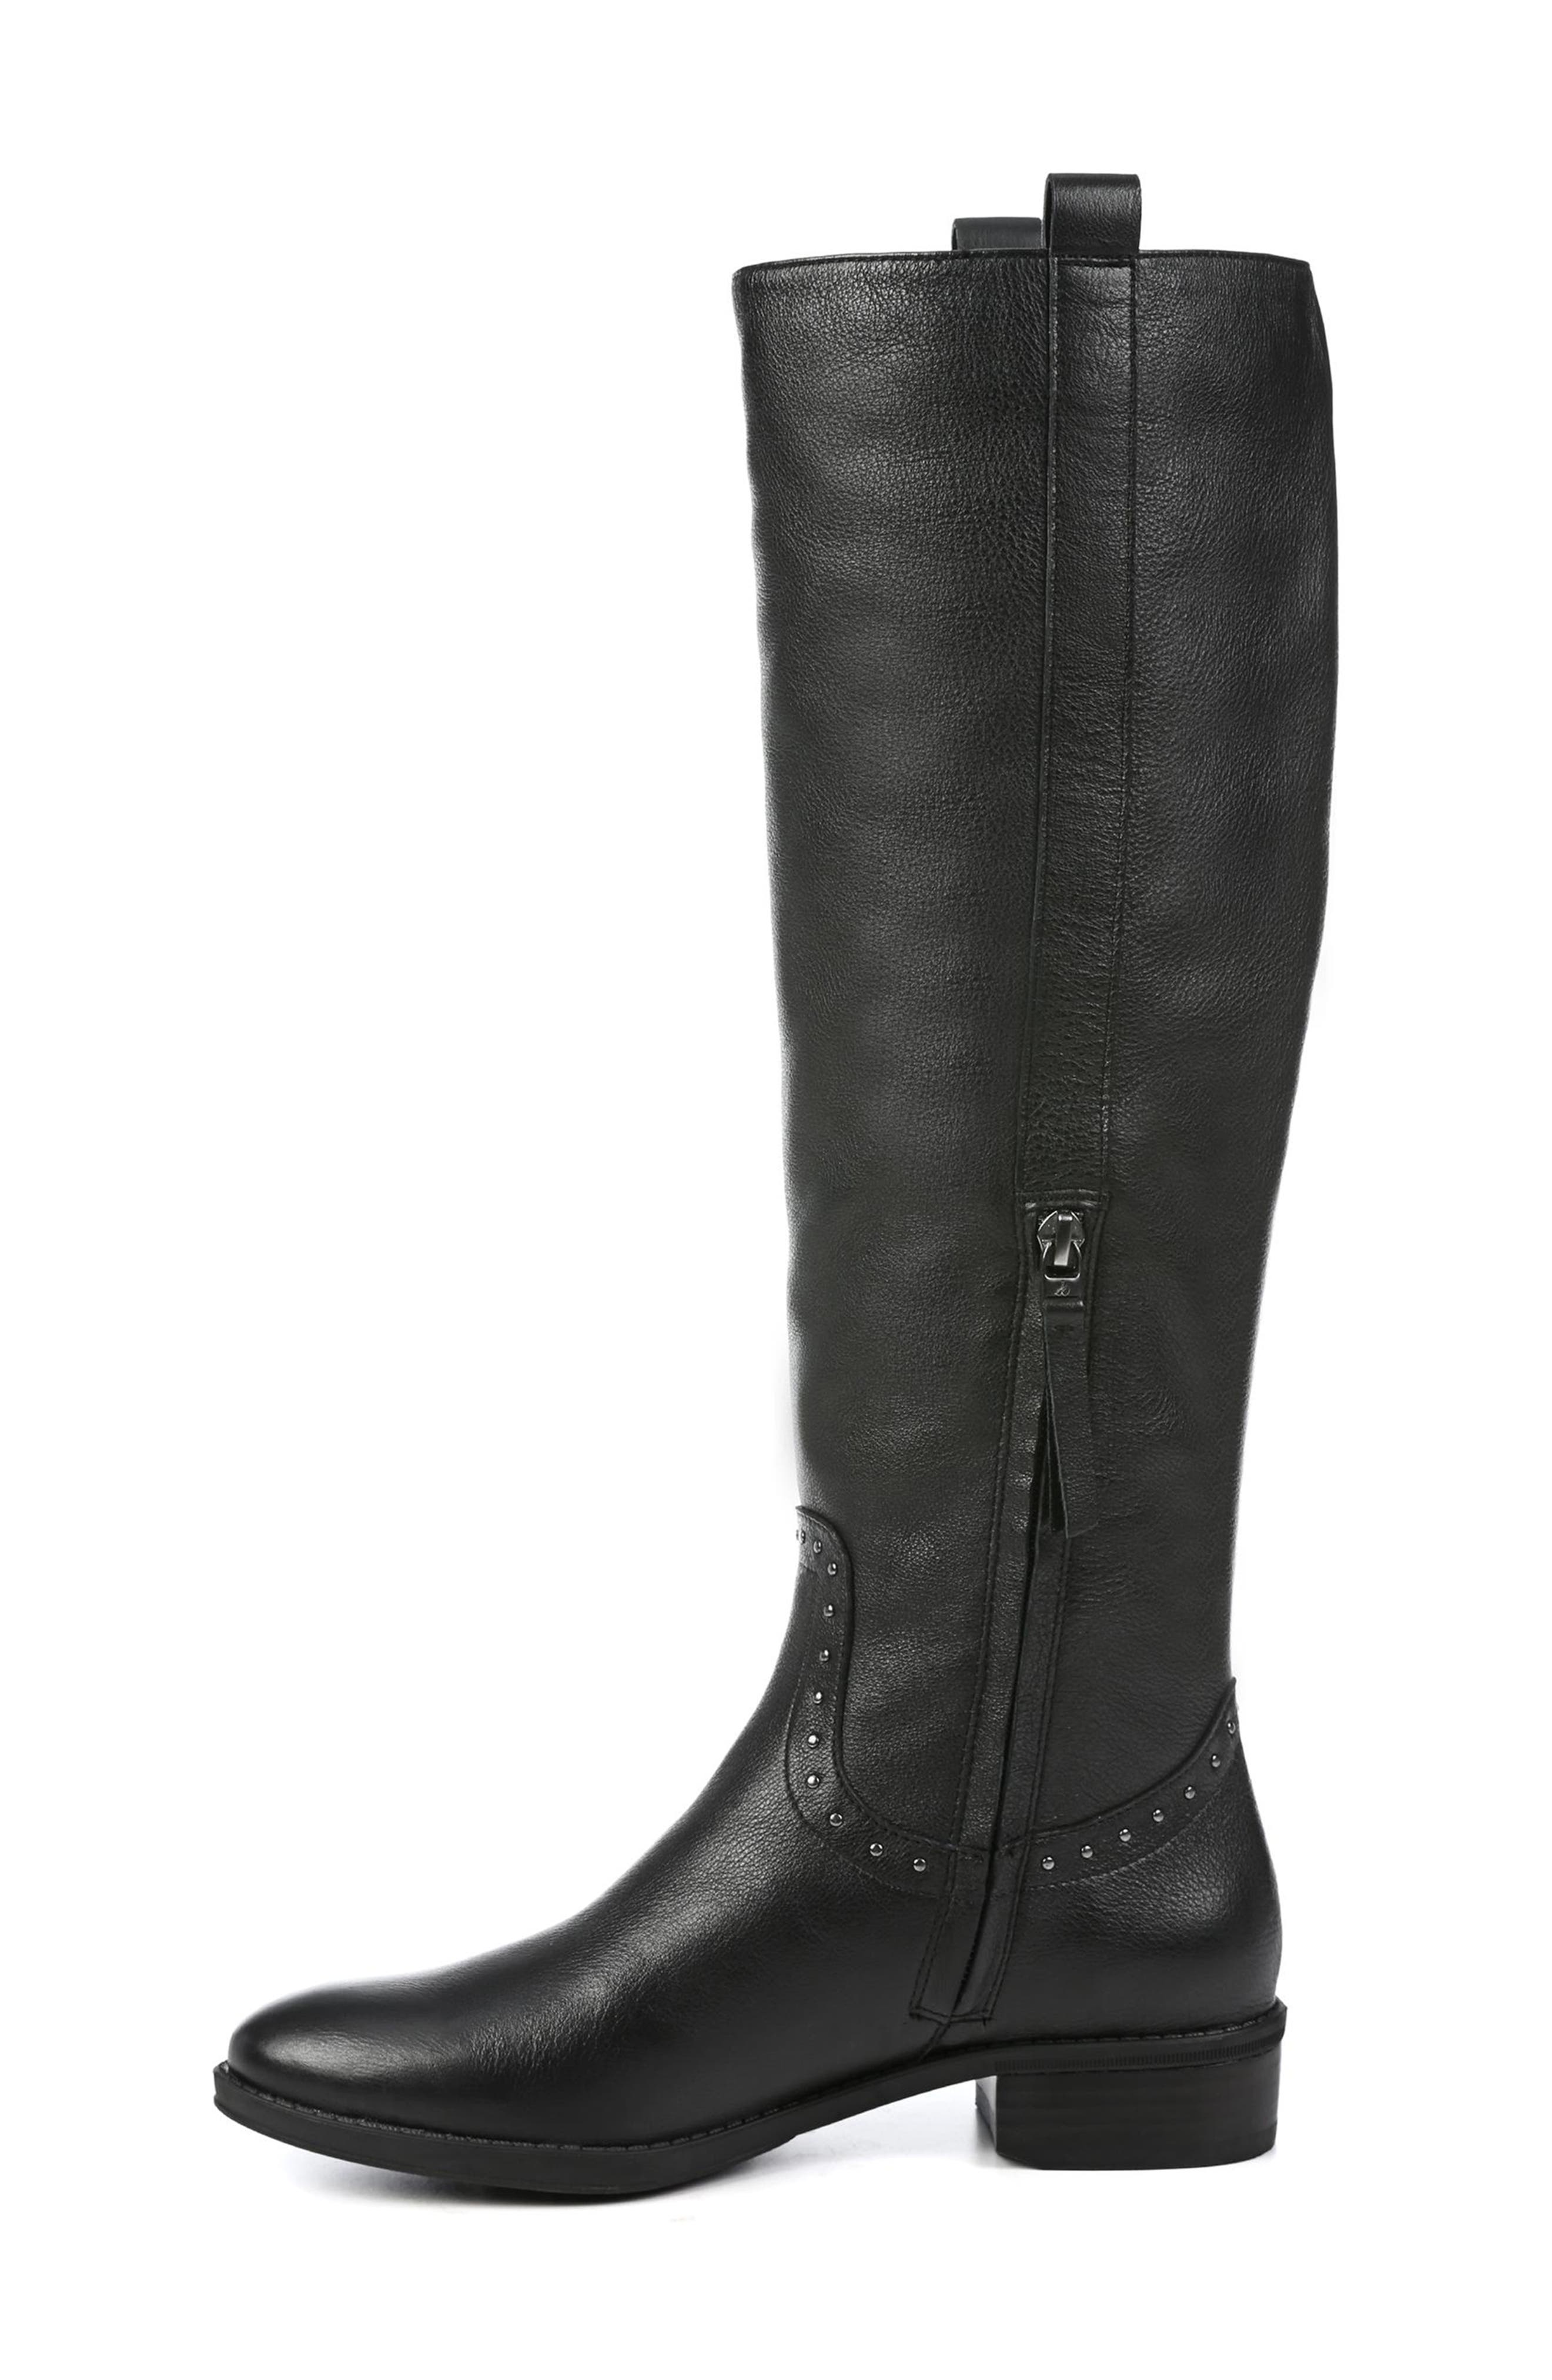 Prina Riding Boot,                             Alternate thumbnail 9, color,                             BLACK LEATHER